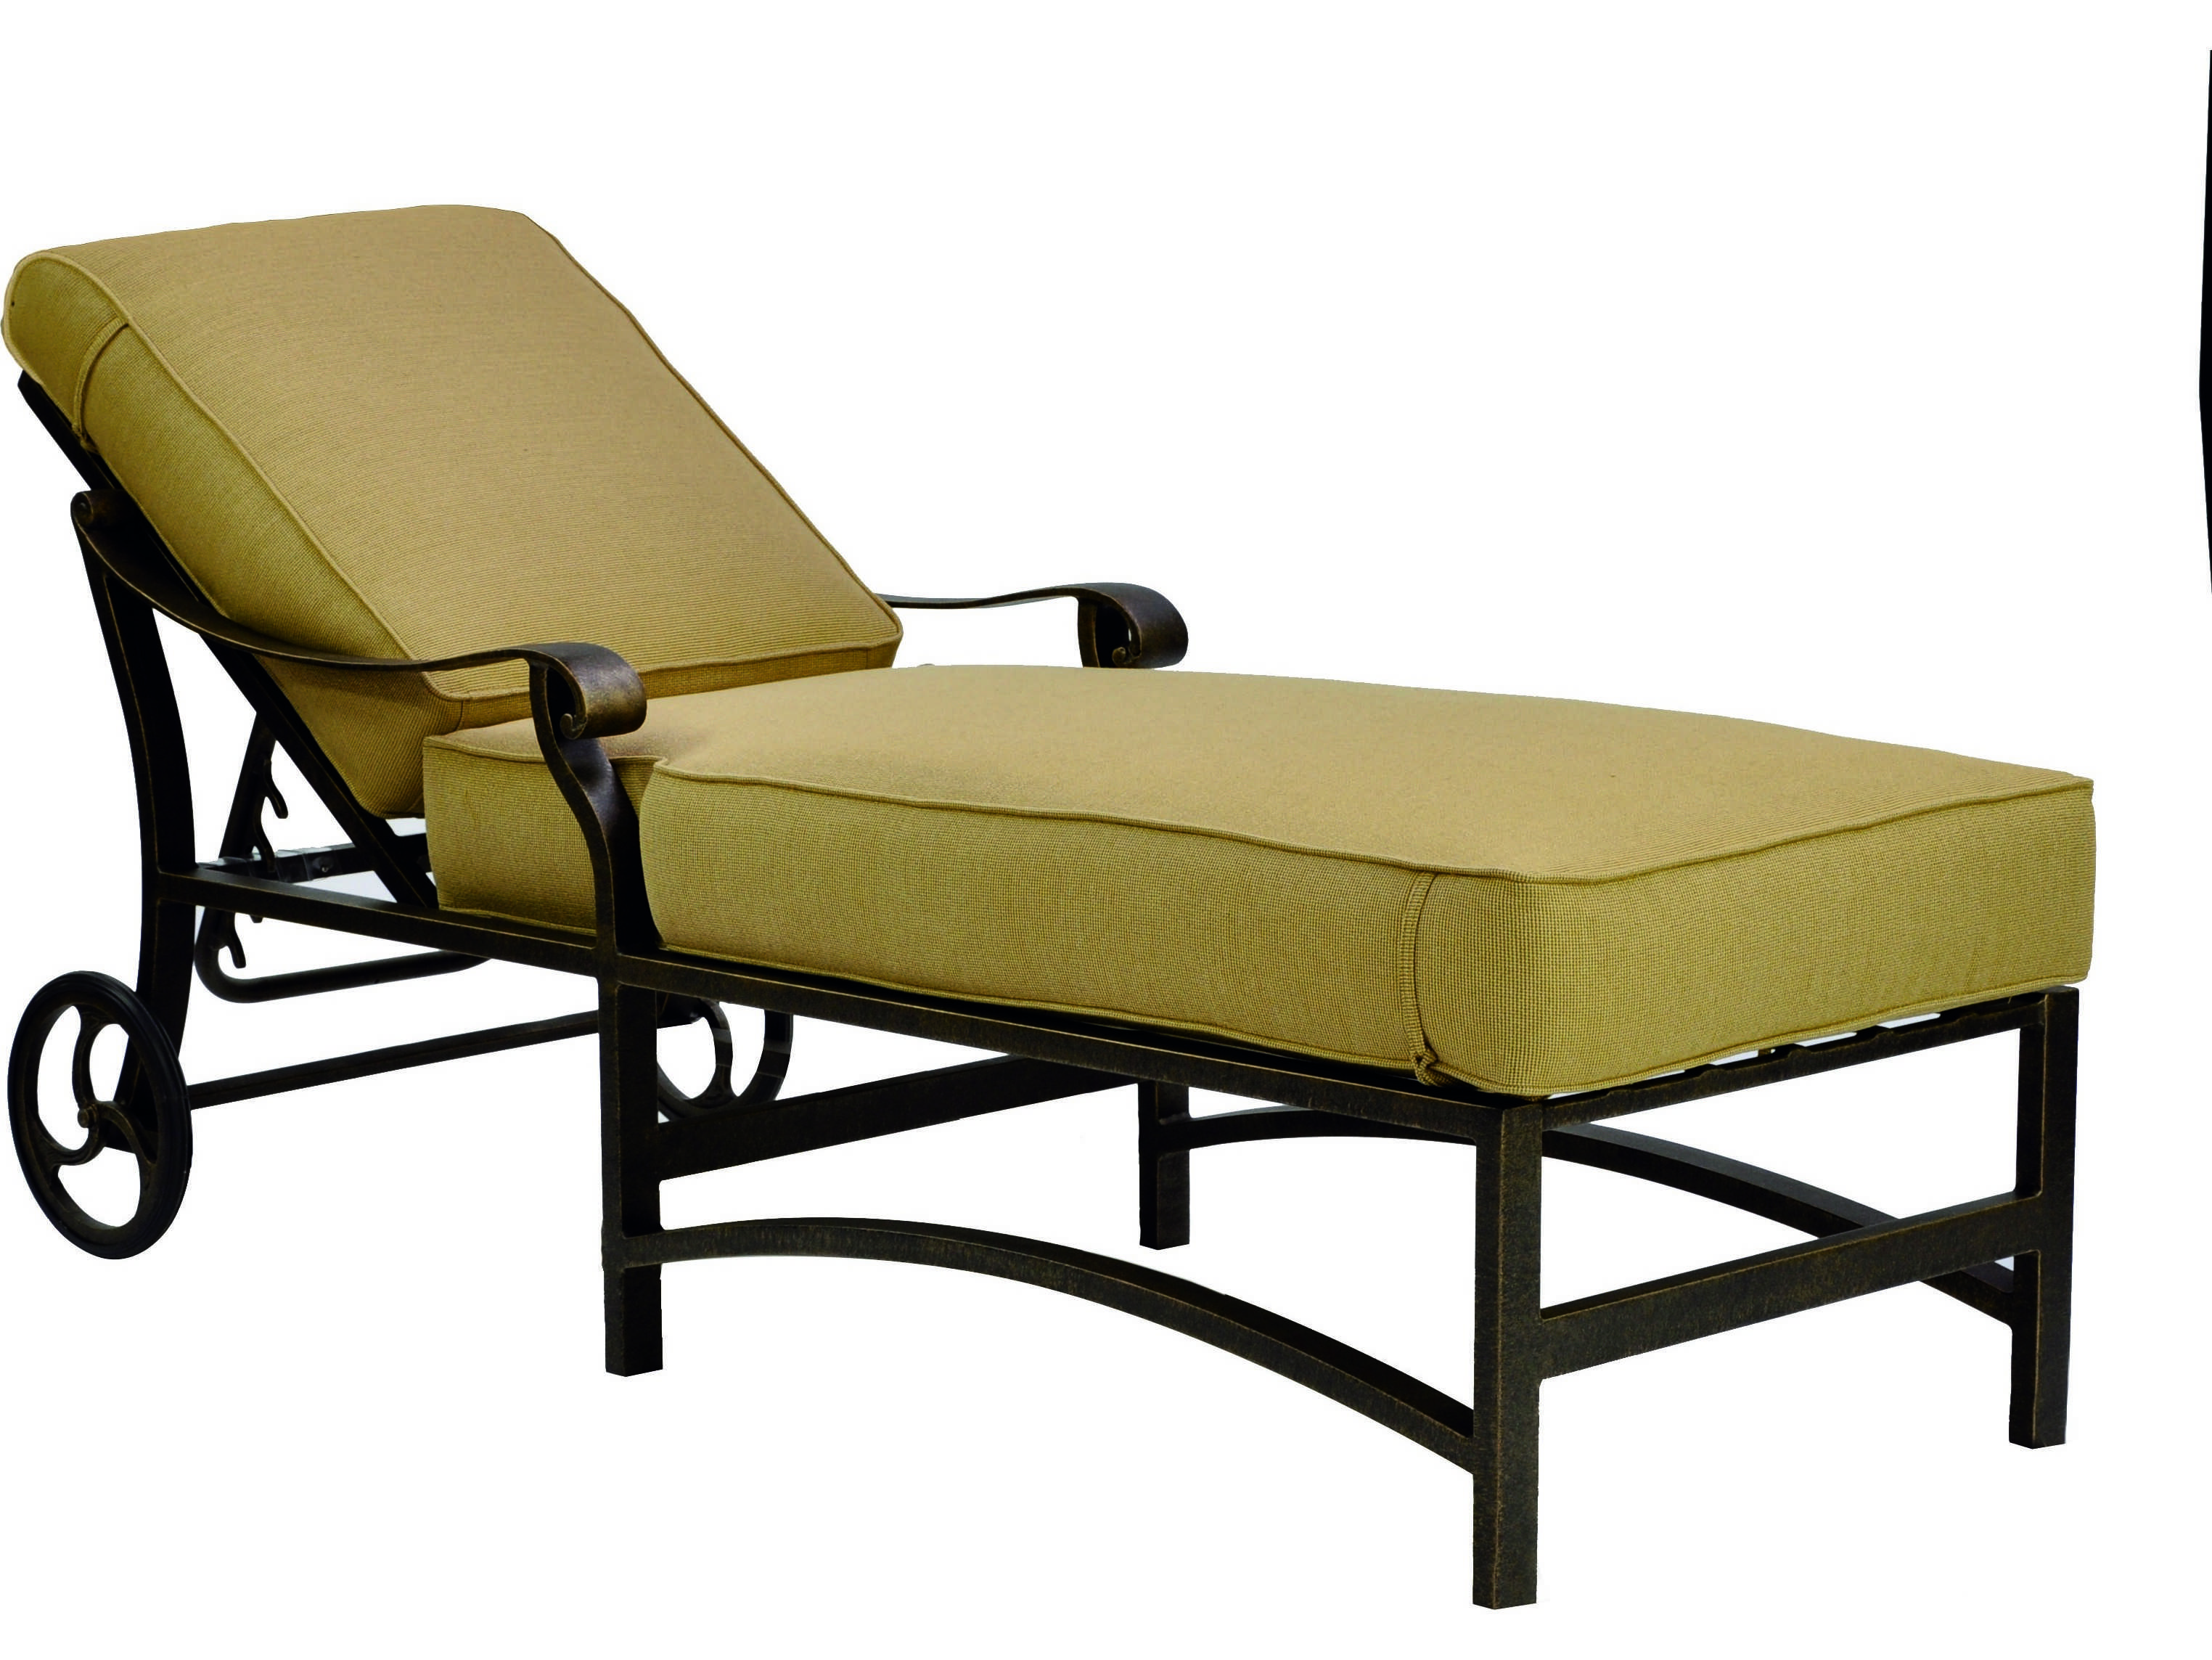 Castelle madrid cushion cast aluminum adjustable chaise for Aluminum chaise lounge with wheels